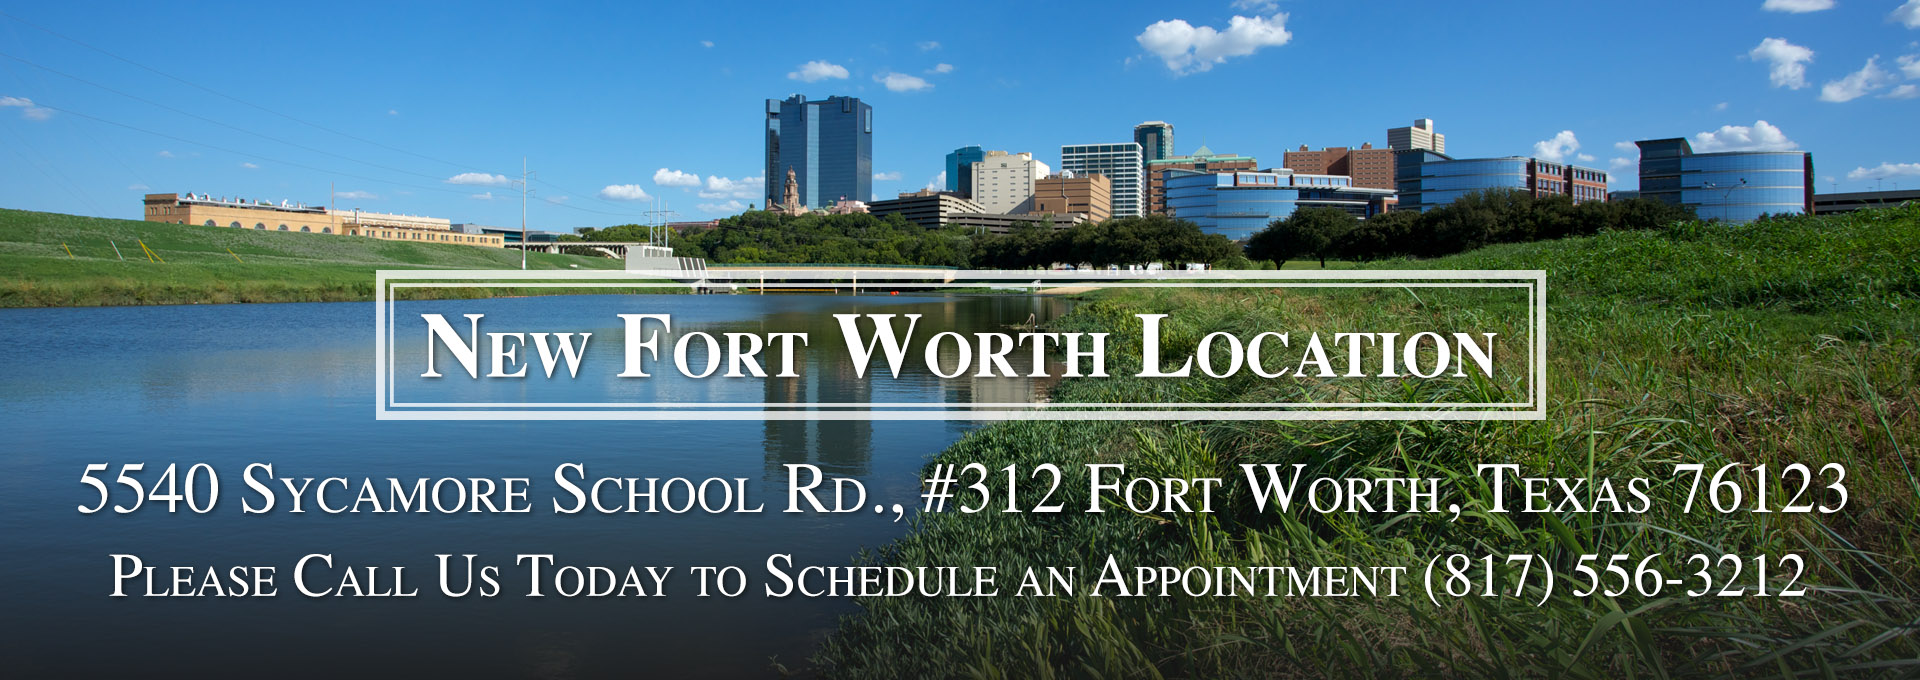 New Fort Worth Location